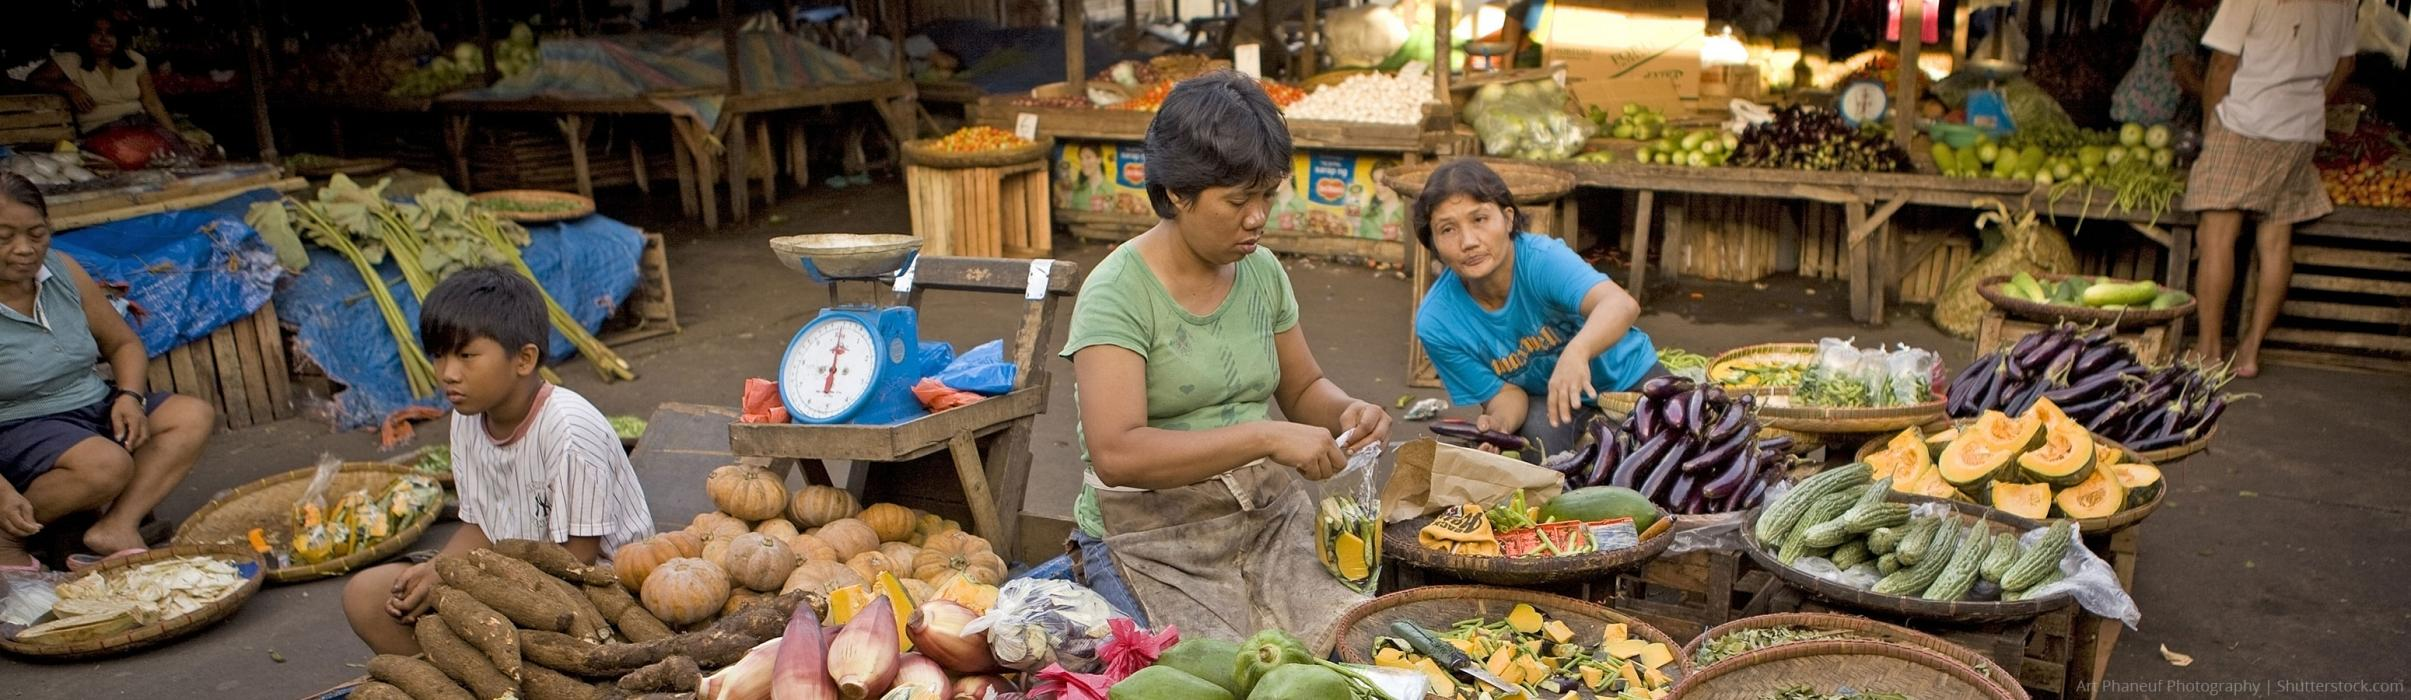 people at market selling fresh produce